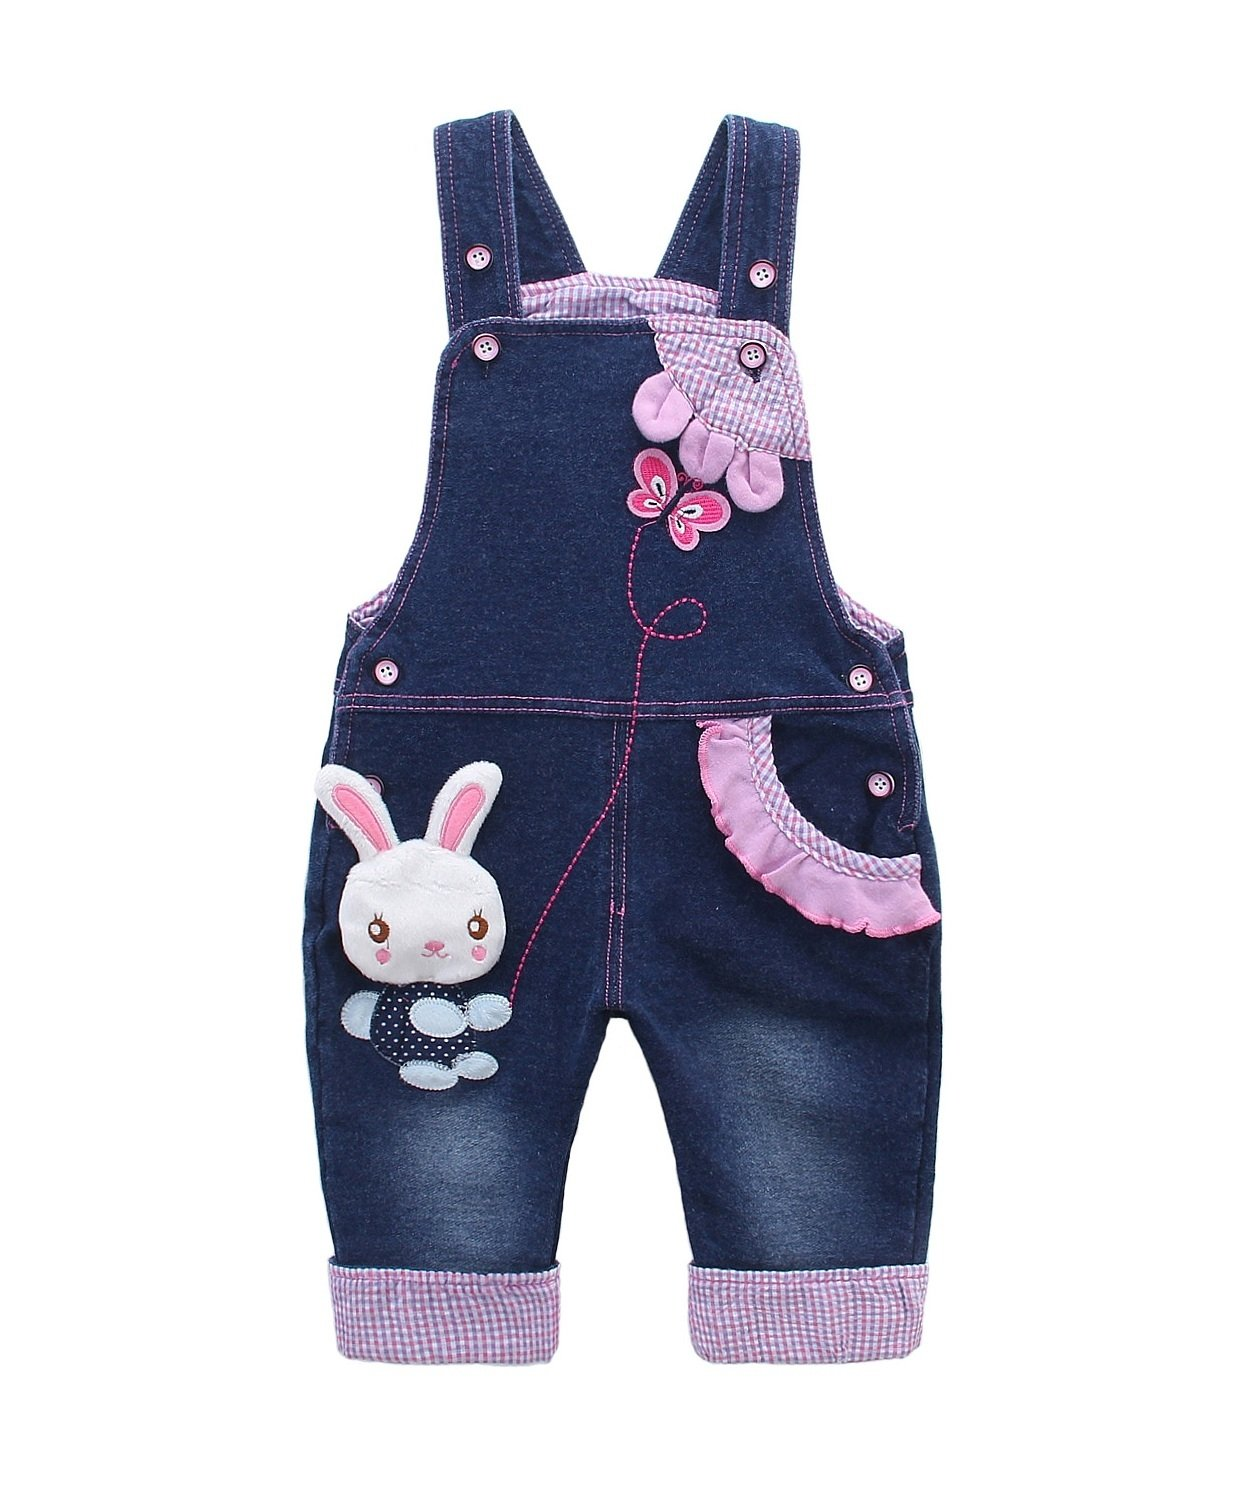 DEBAIJIA Baby Girls Overall Jeans Children Bib Denim Dungarees Bunny Butterfly